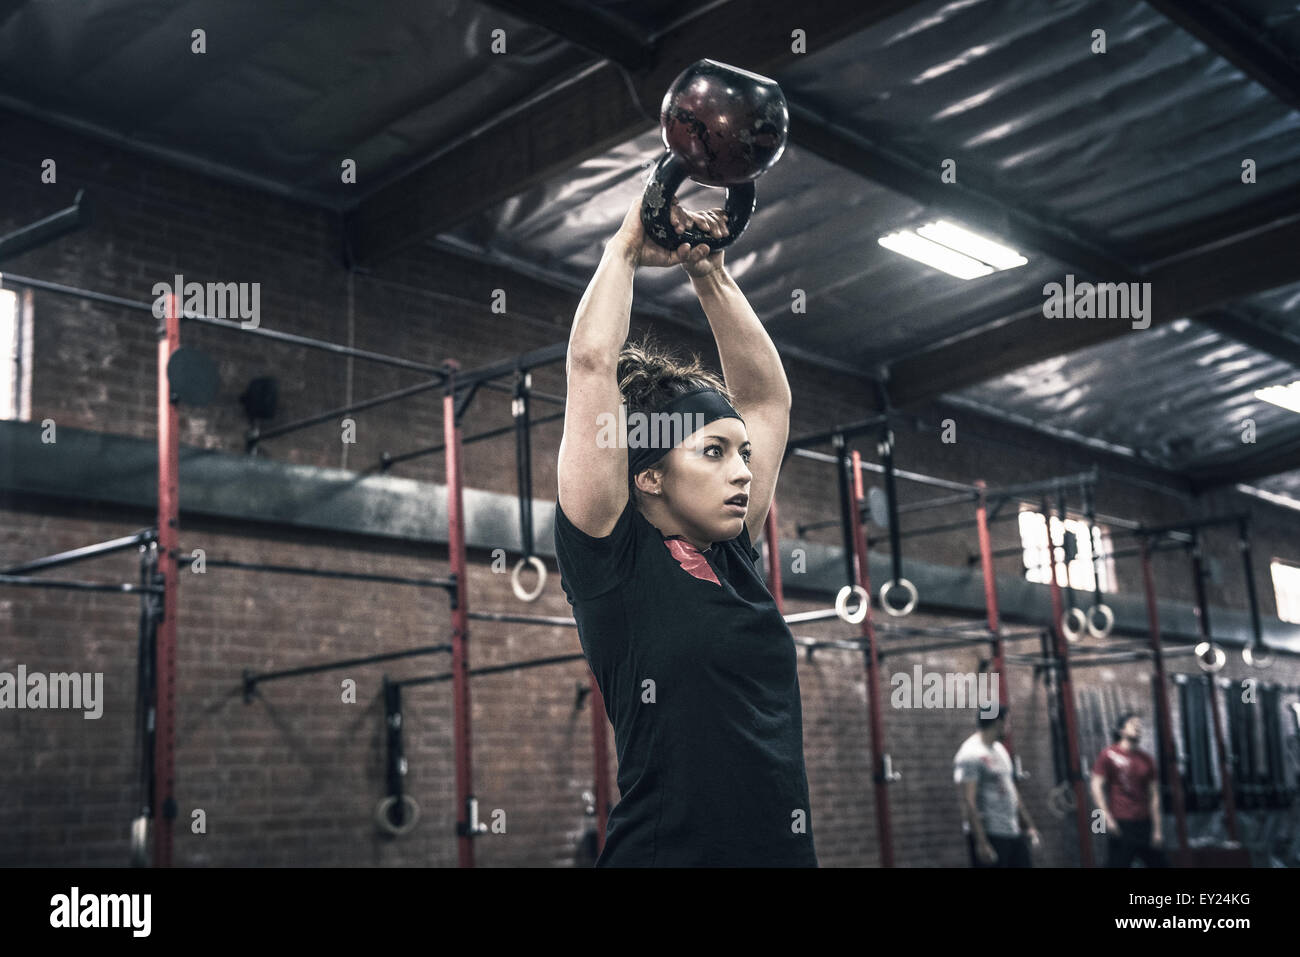 Young woman holding up kettle bells in gym - Stock Image